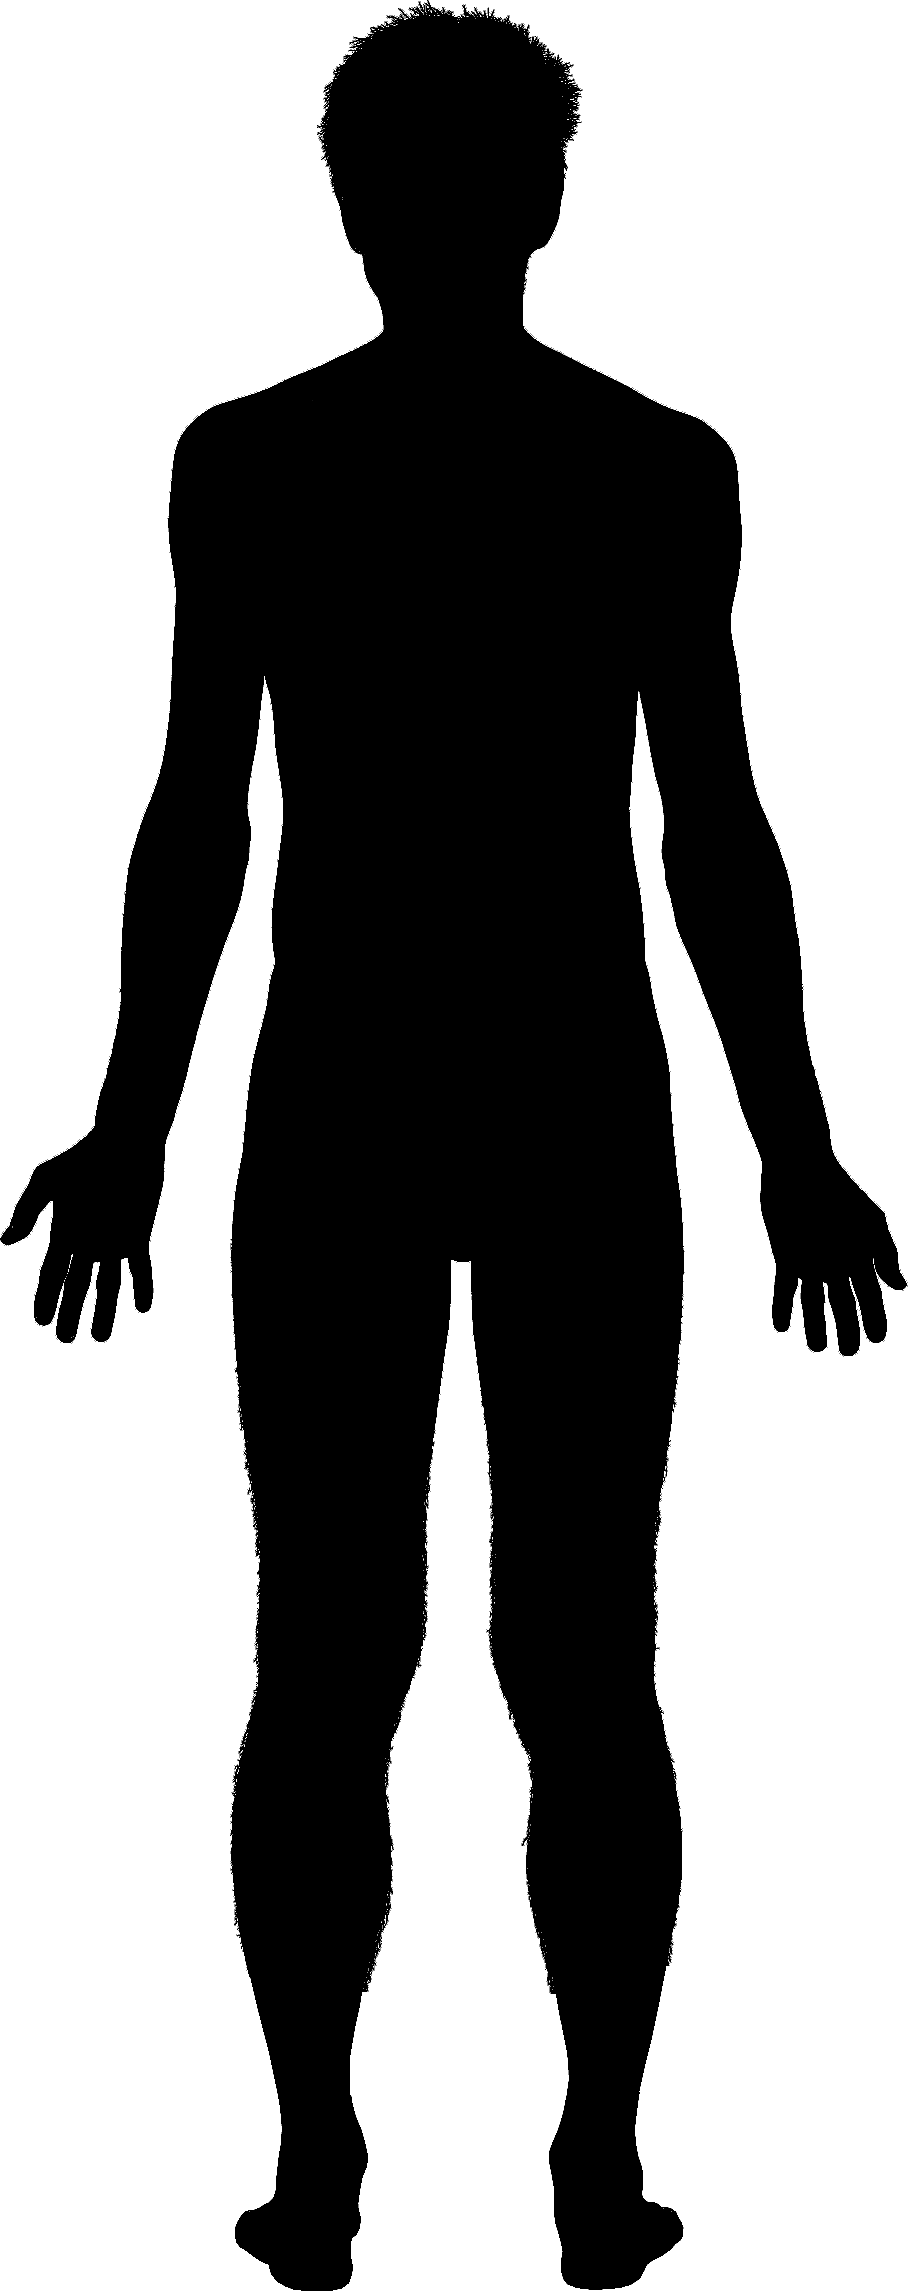 Human body outline clipart male